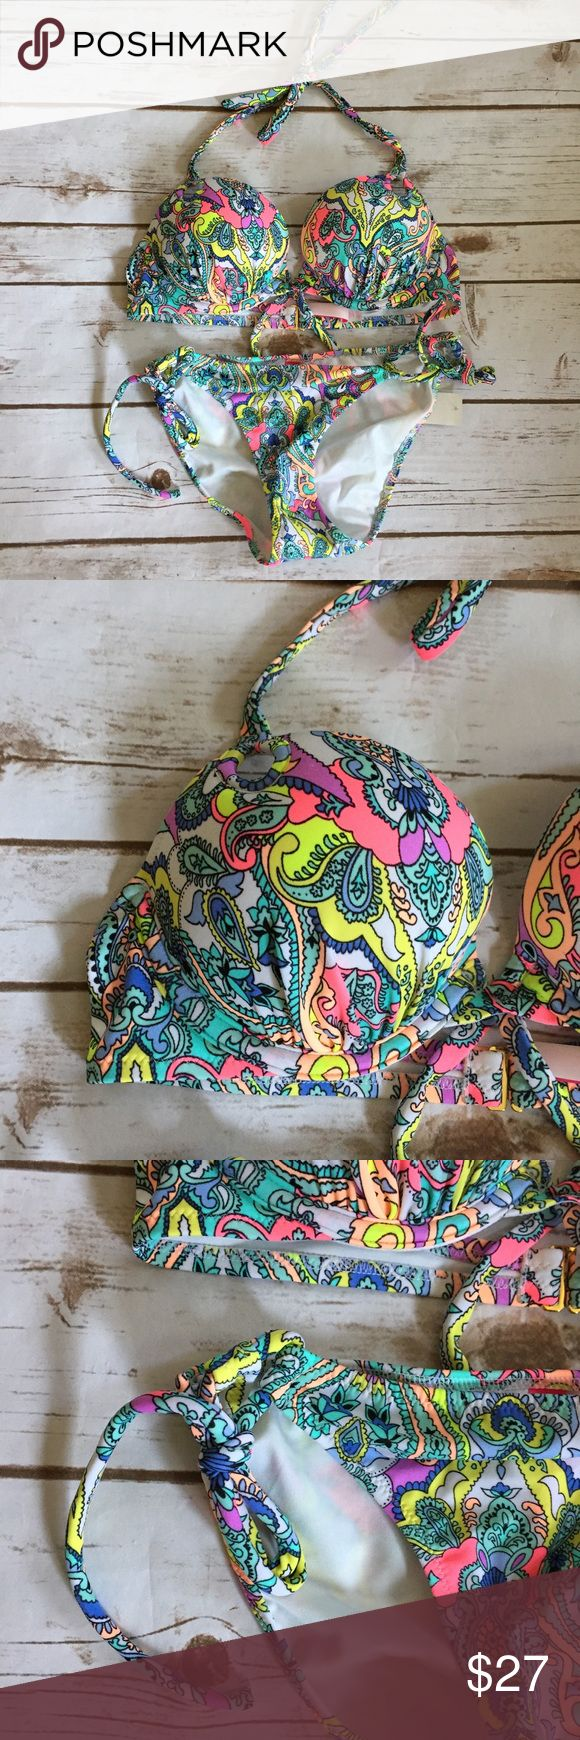 NWT Victoria's Secret Paisley Cut Out Bikini SMALL NWT Victoria's Secret Paisley Cut Out Bikini 32A Top SMALL Bottoms Size: 32A Top SMALL Bottoms Clasps in back and ties behind neck  Underwire  Padded  Nylon blend  Hand wash    /305/ Victoria's Secret Swim Bikinis